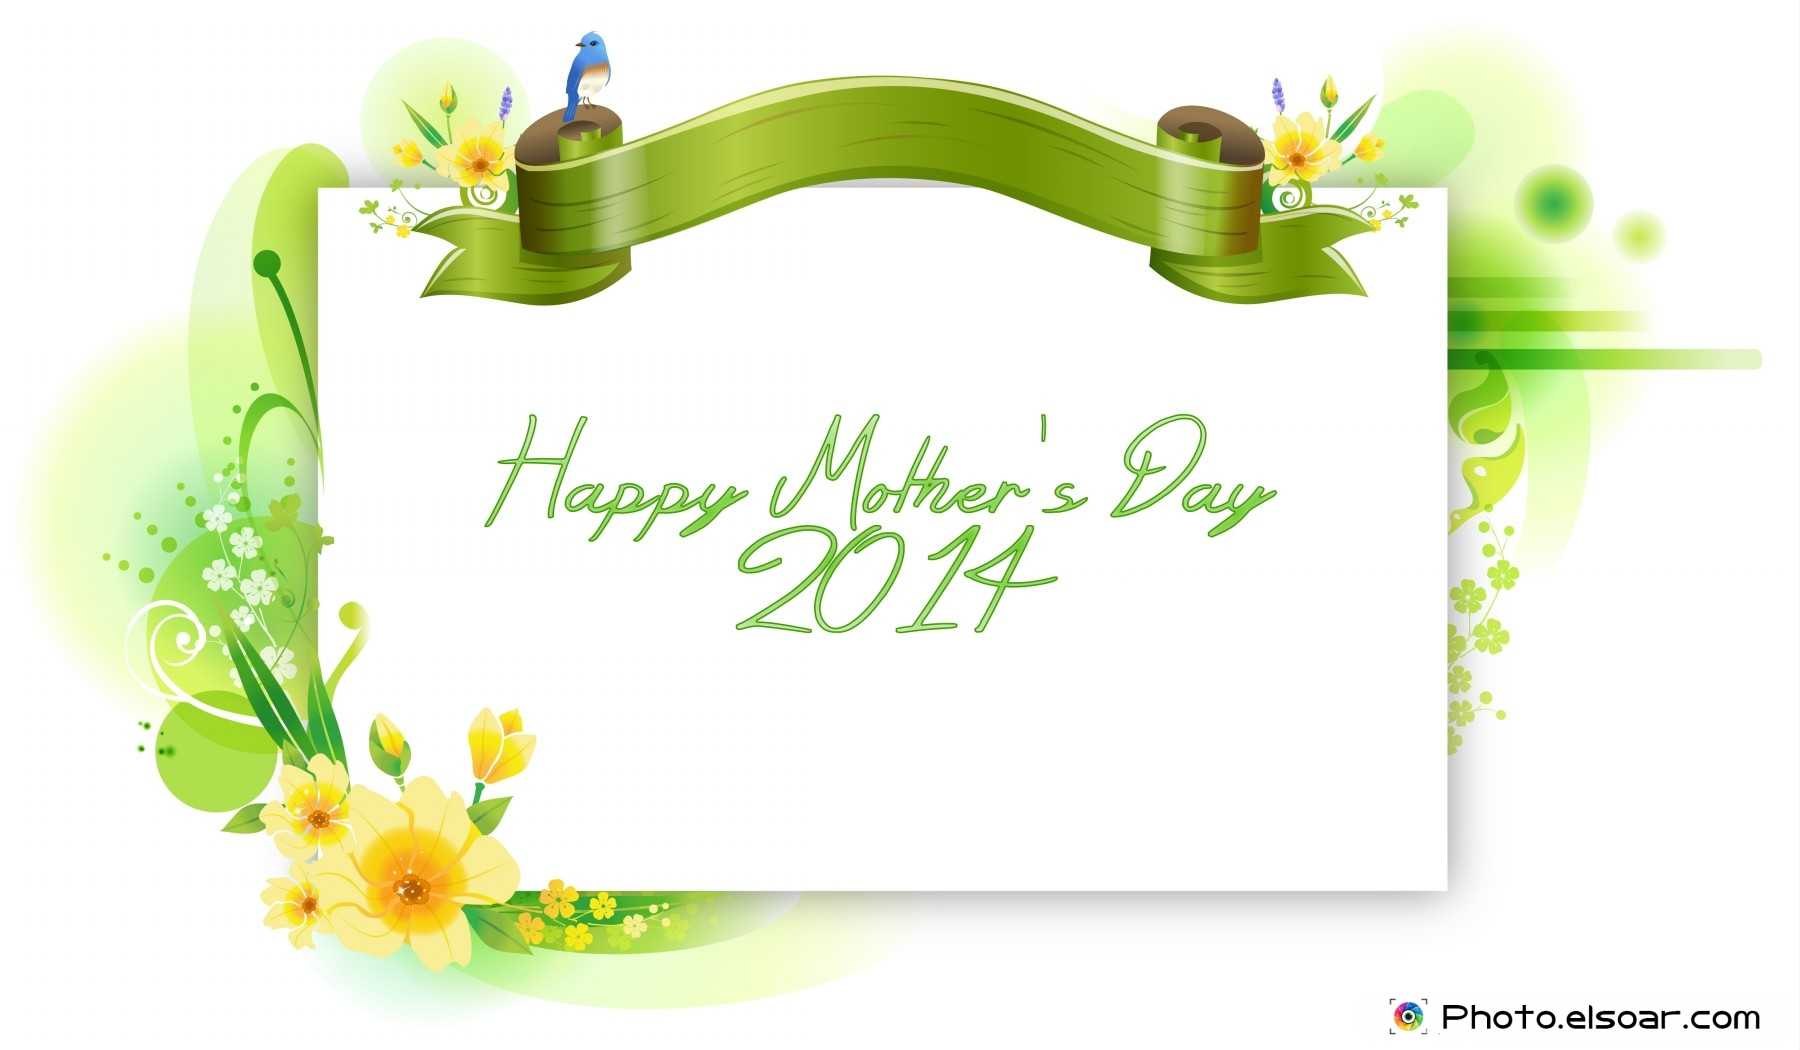 share best mothers day 2014 images on facebook tumblr google share best mothers day 2014 images on facebook tumblr google